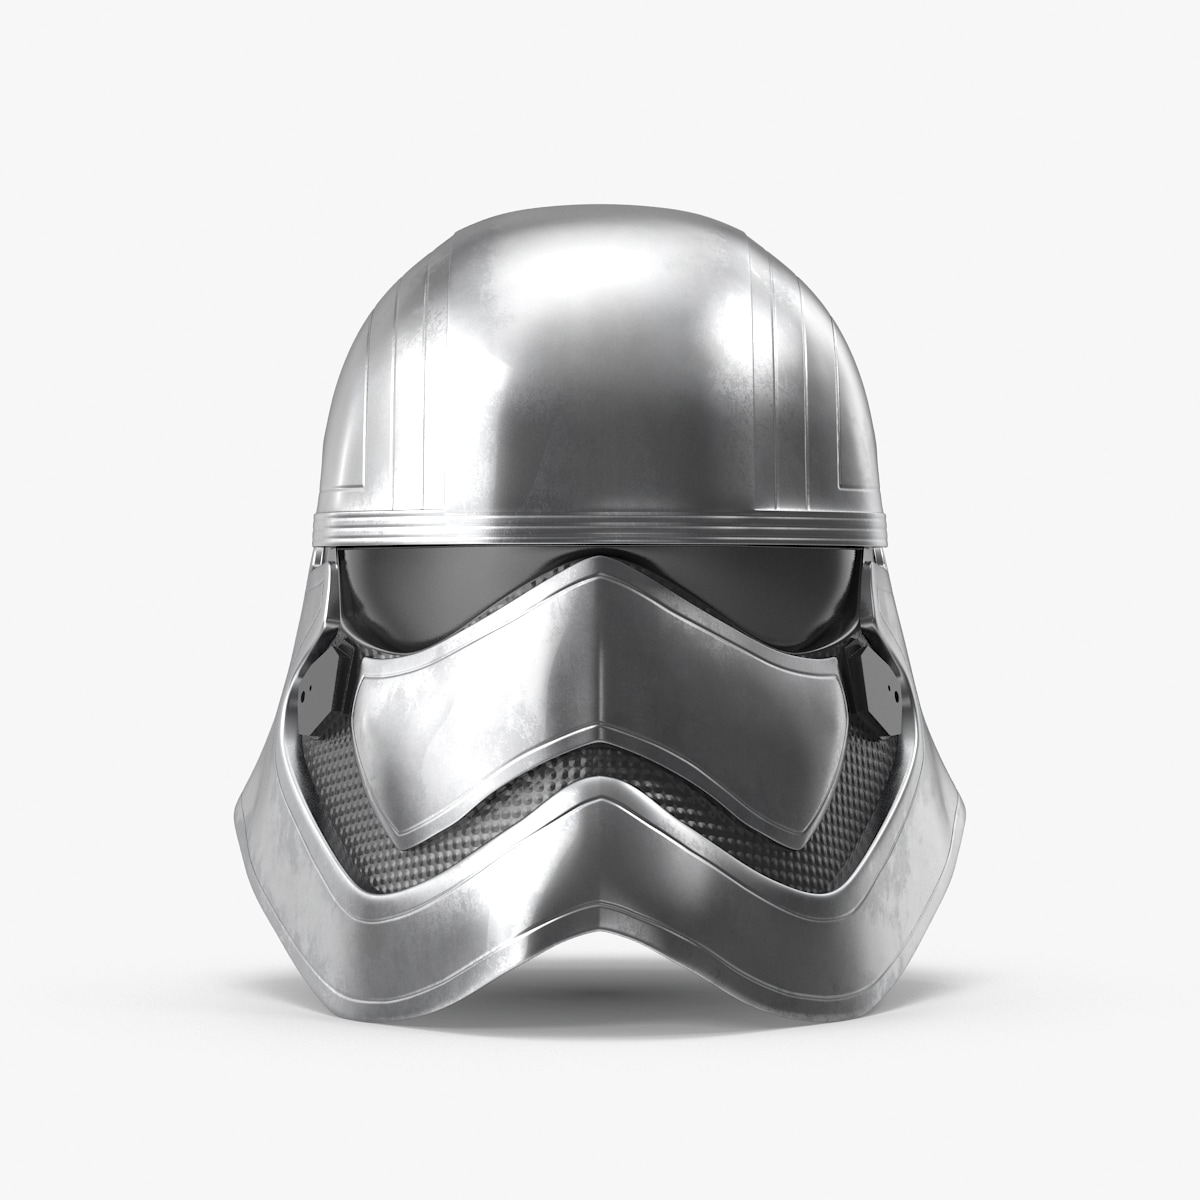 c4d captain phasma helmet